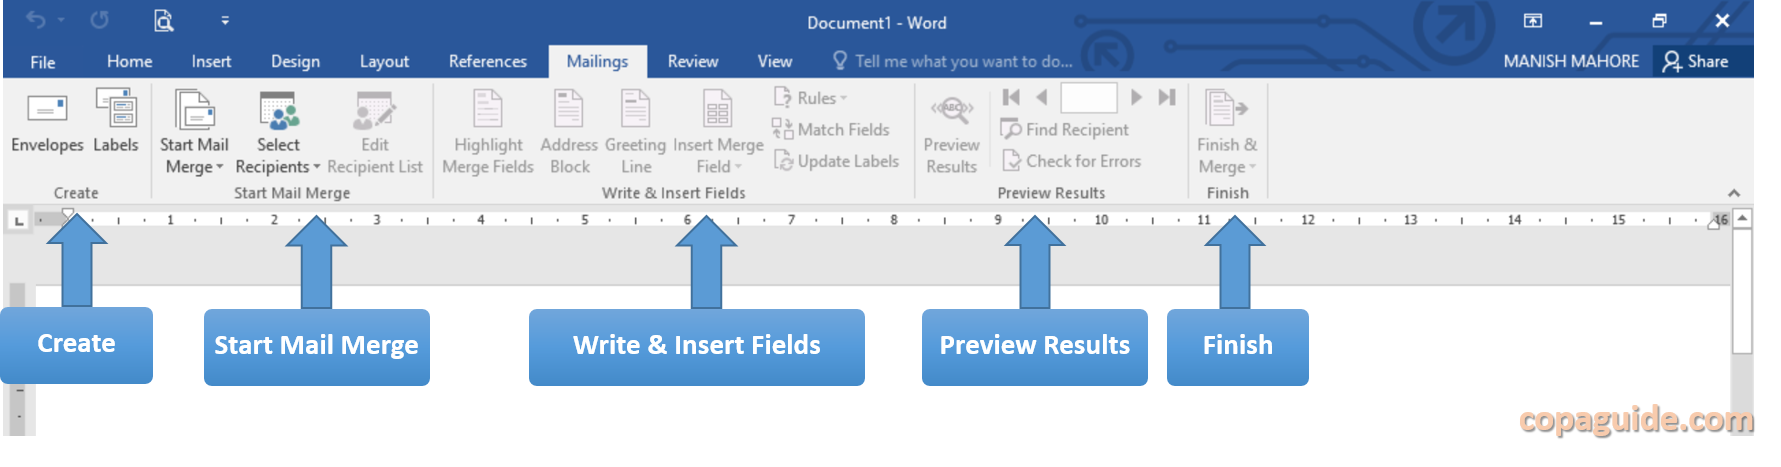 MS Word Mailing Tab Commands